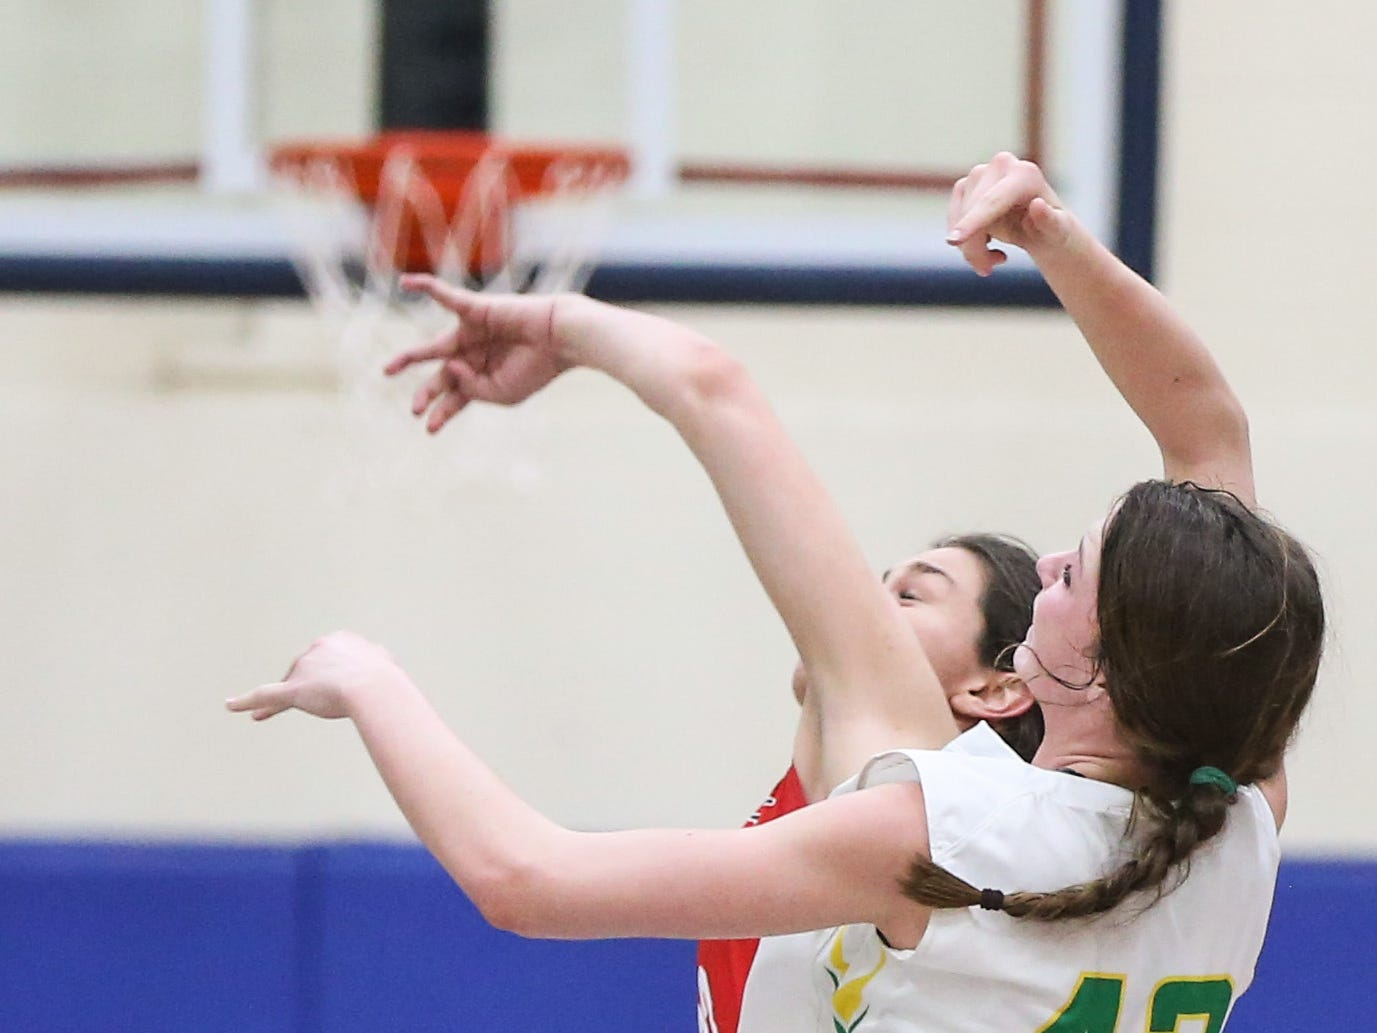 Idalou's Taylor Houston and Jim Ned player fight to reach for a pass first during the I-3A regional tournament Friday, Feb. 22, 2019, at Wayland Baptist University in Plainview.